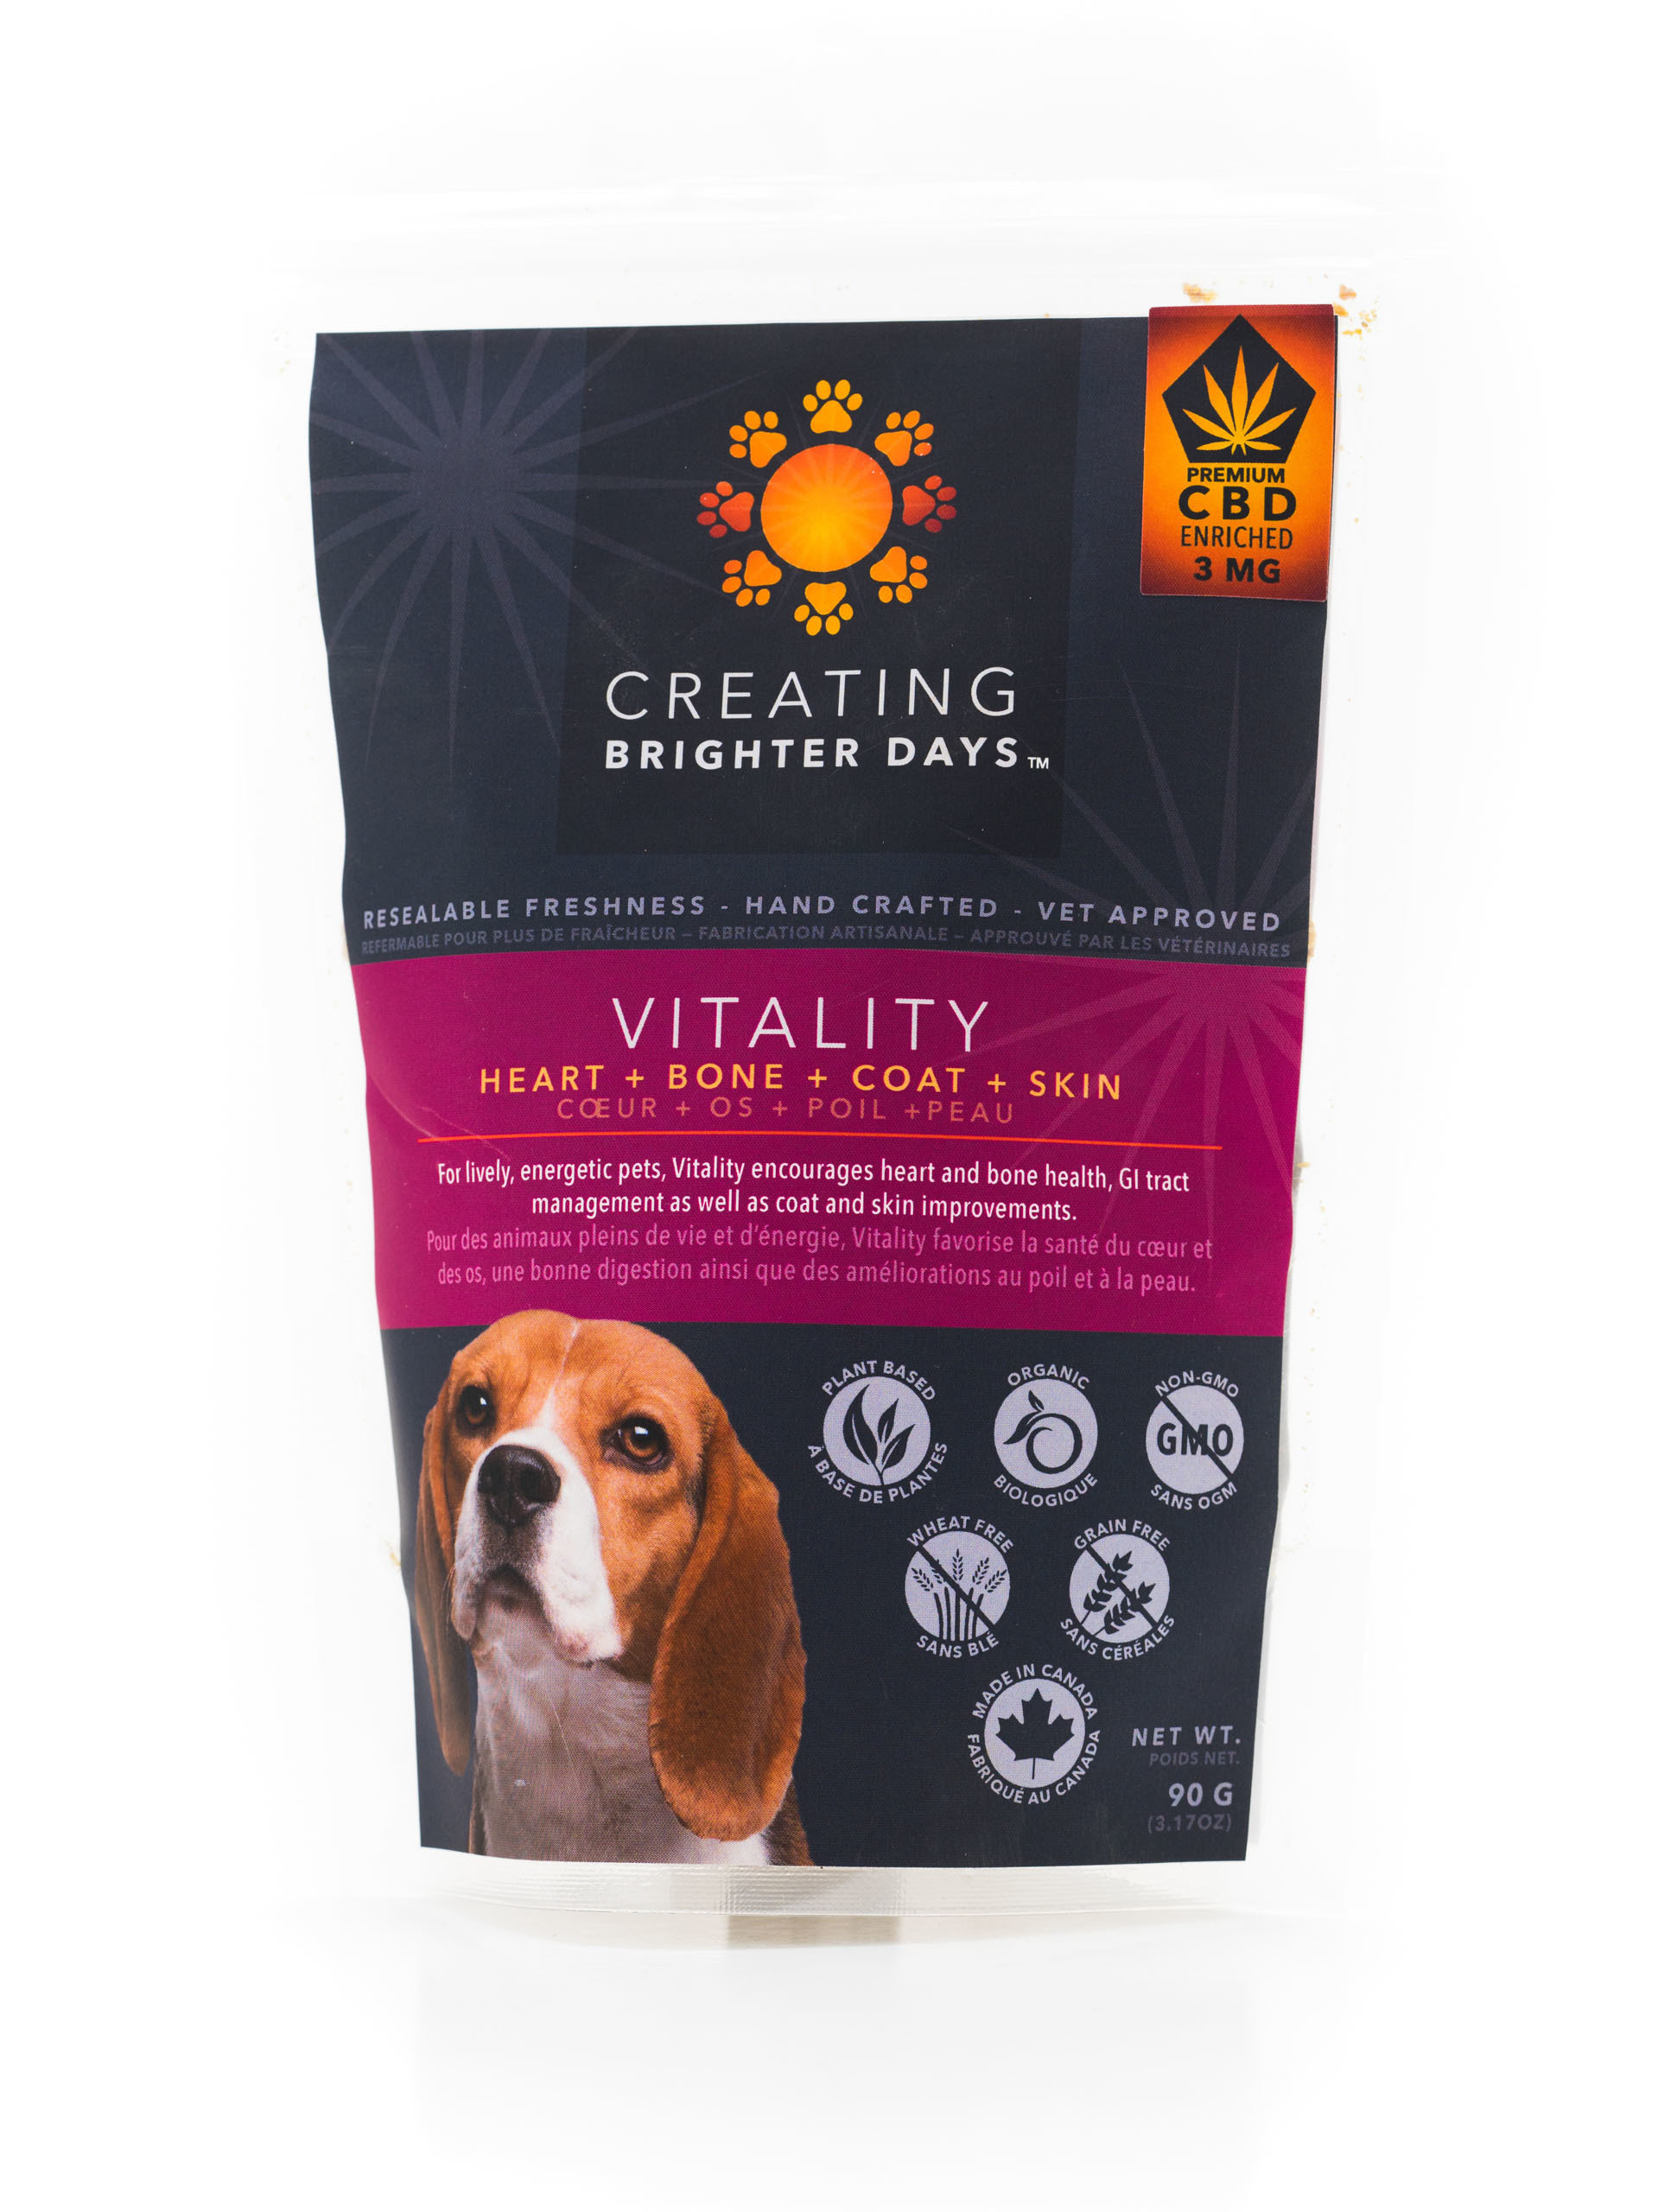 Vitality Enriched Treats (3mg CBD) by Creating Brighter Days 00094